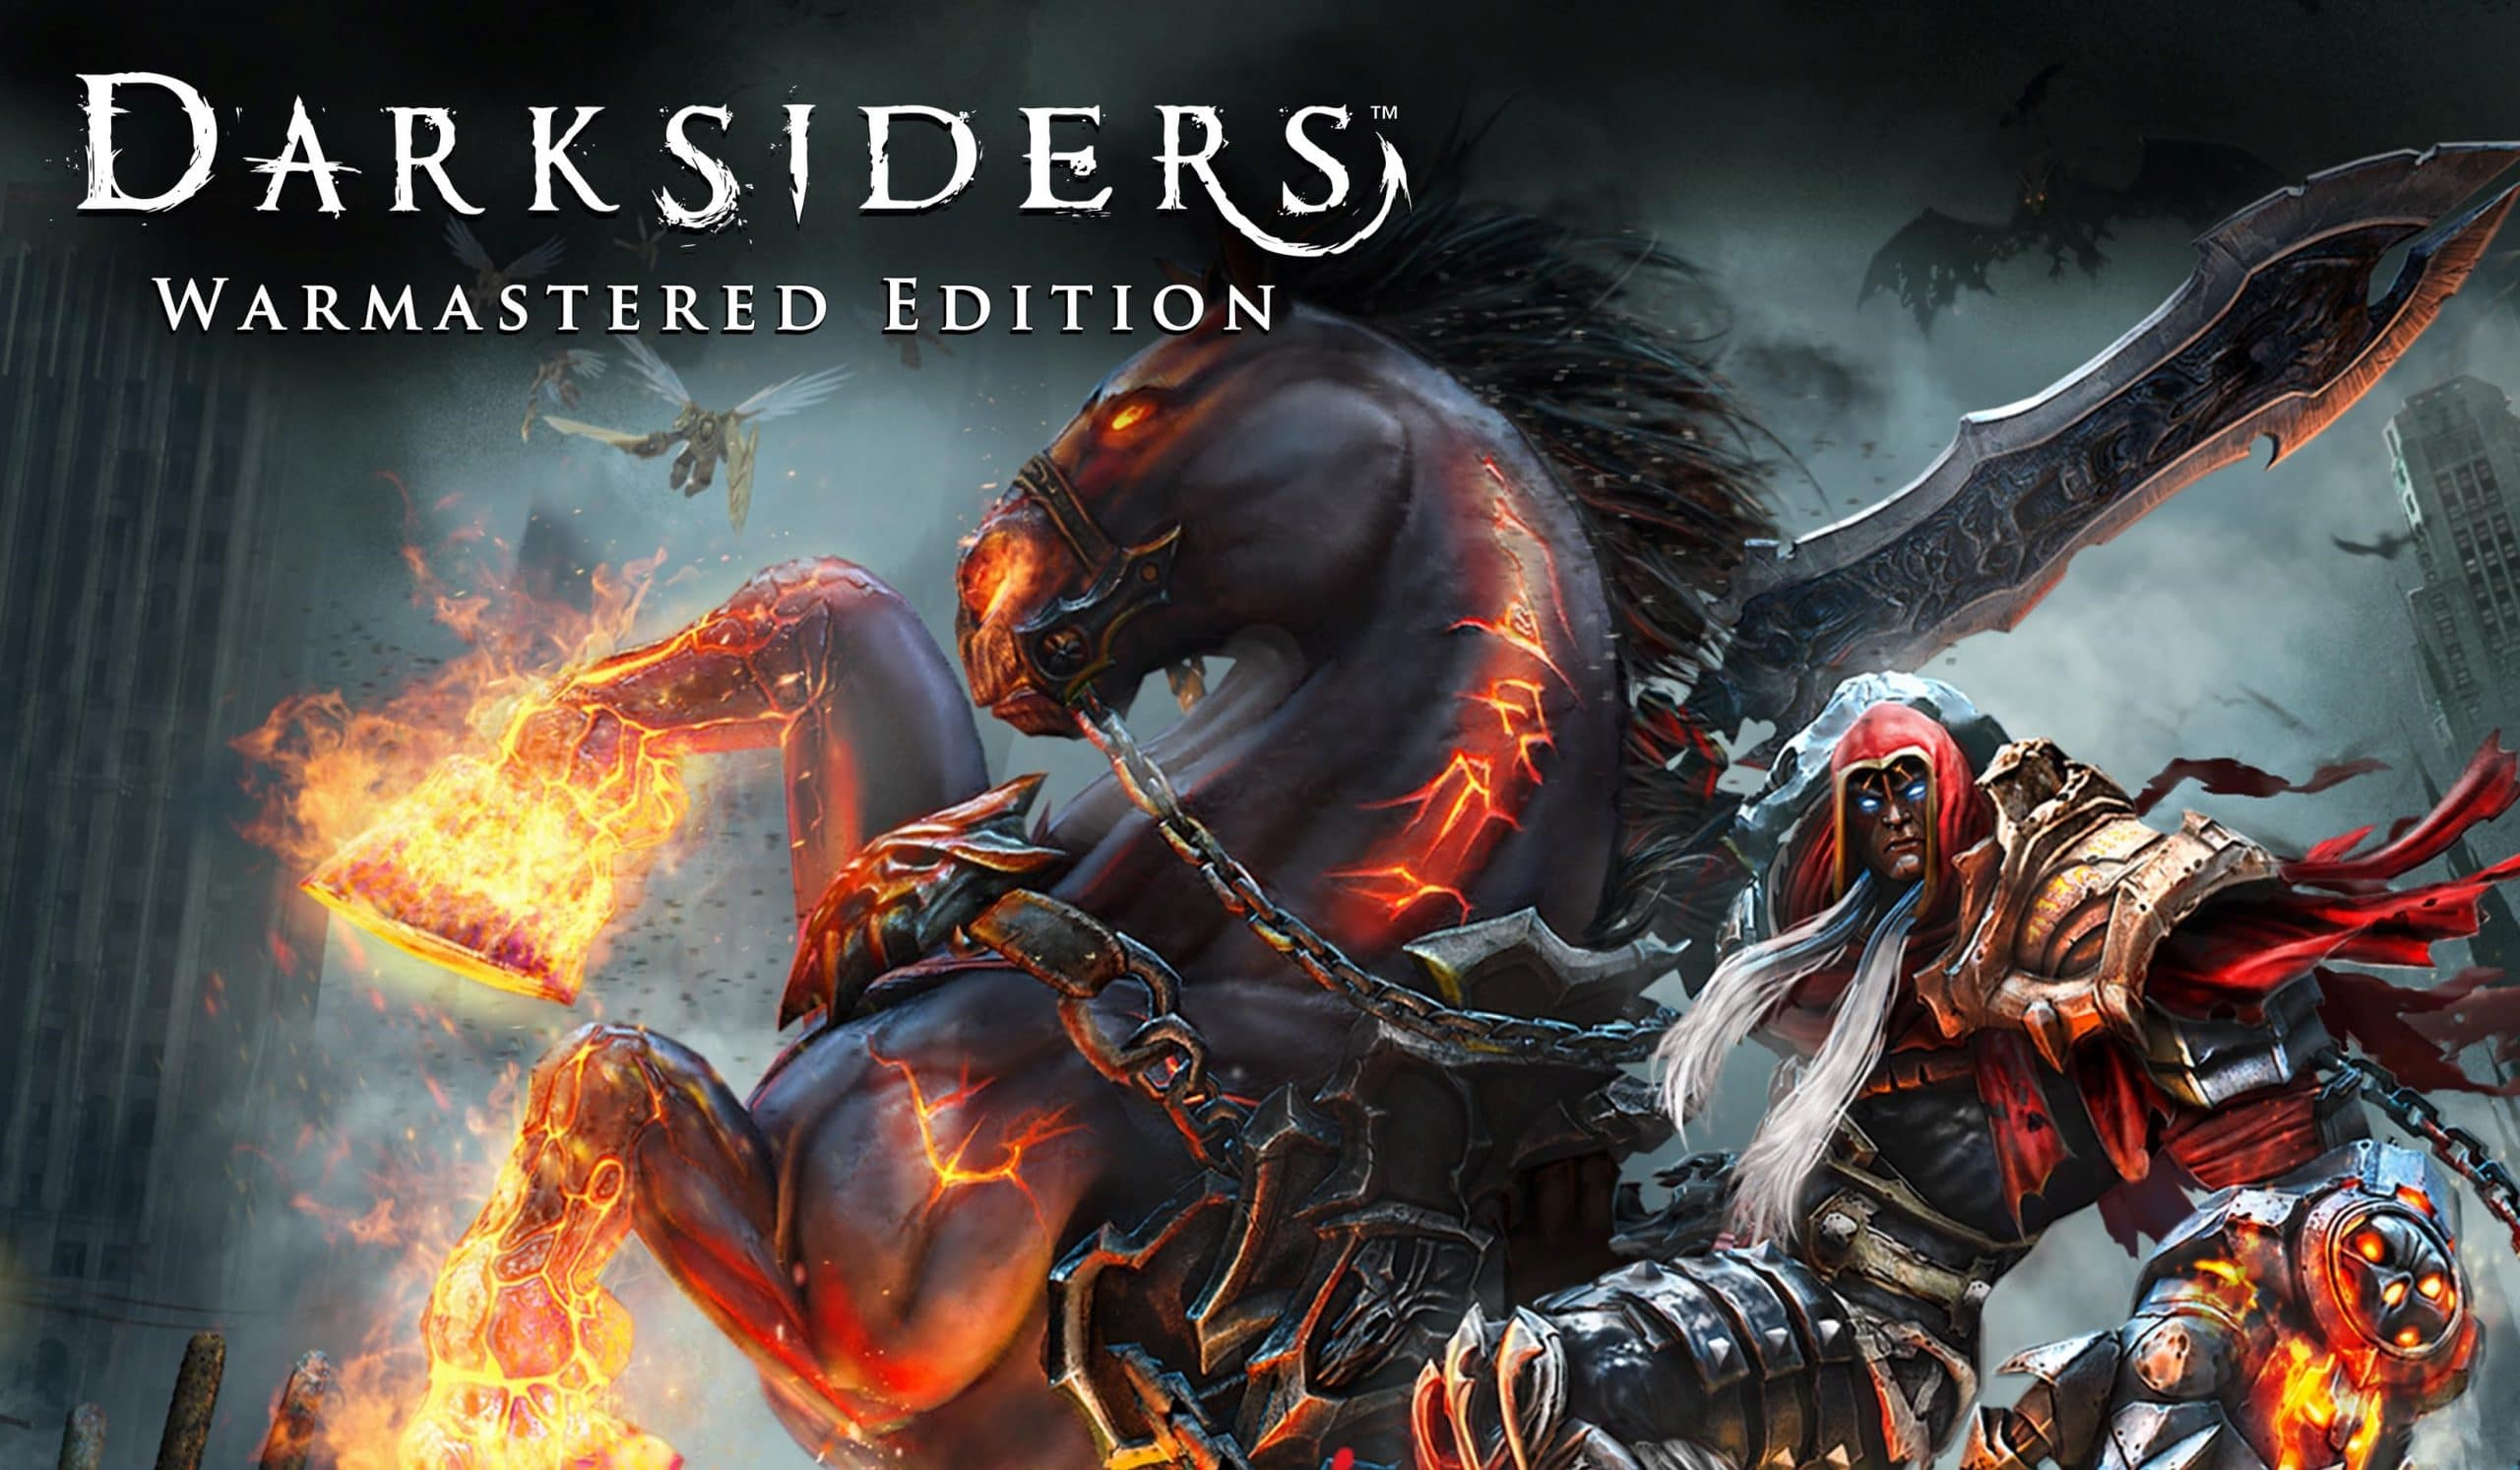 darksiders-warmastered-edition-08-01-16-11